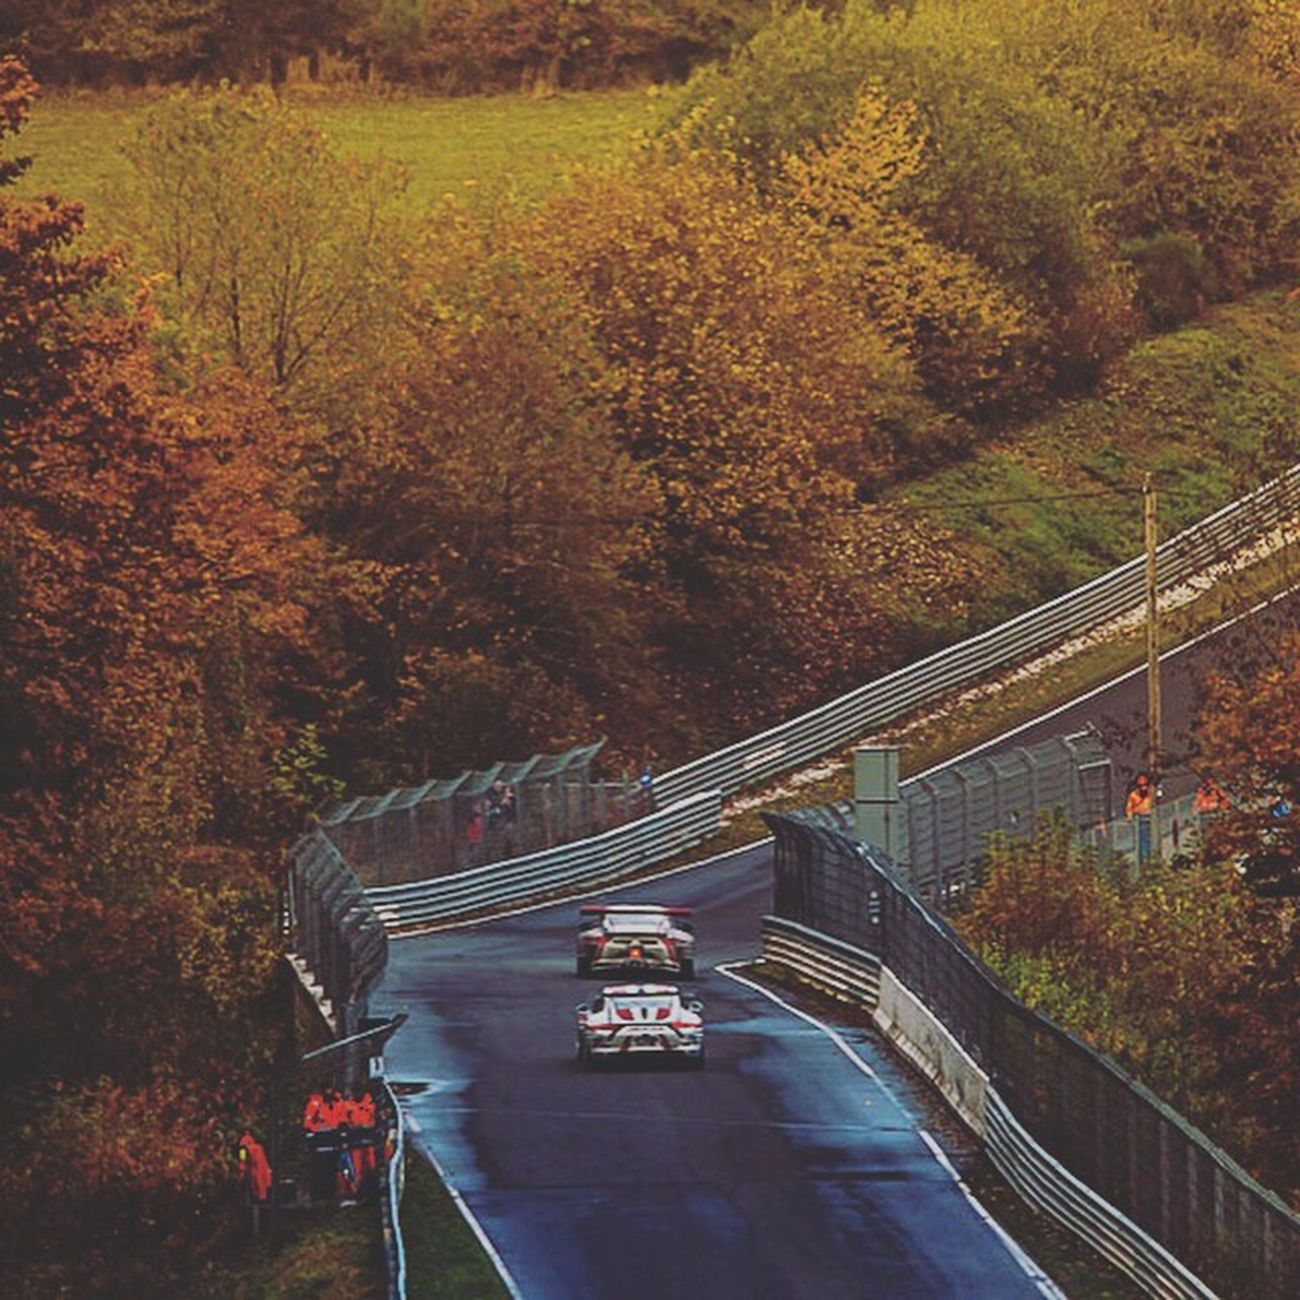 Nordschleife Nurburgring Racetrack - Autumn Eifel Germany Travel Outdoors Road Nature No People Journey First Eyeem Photo